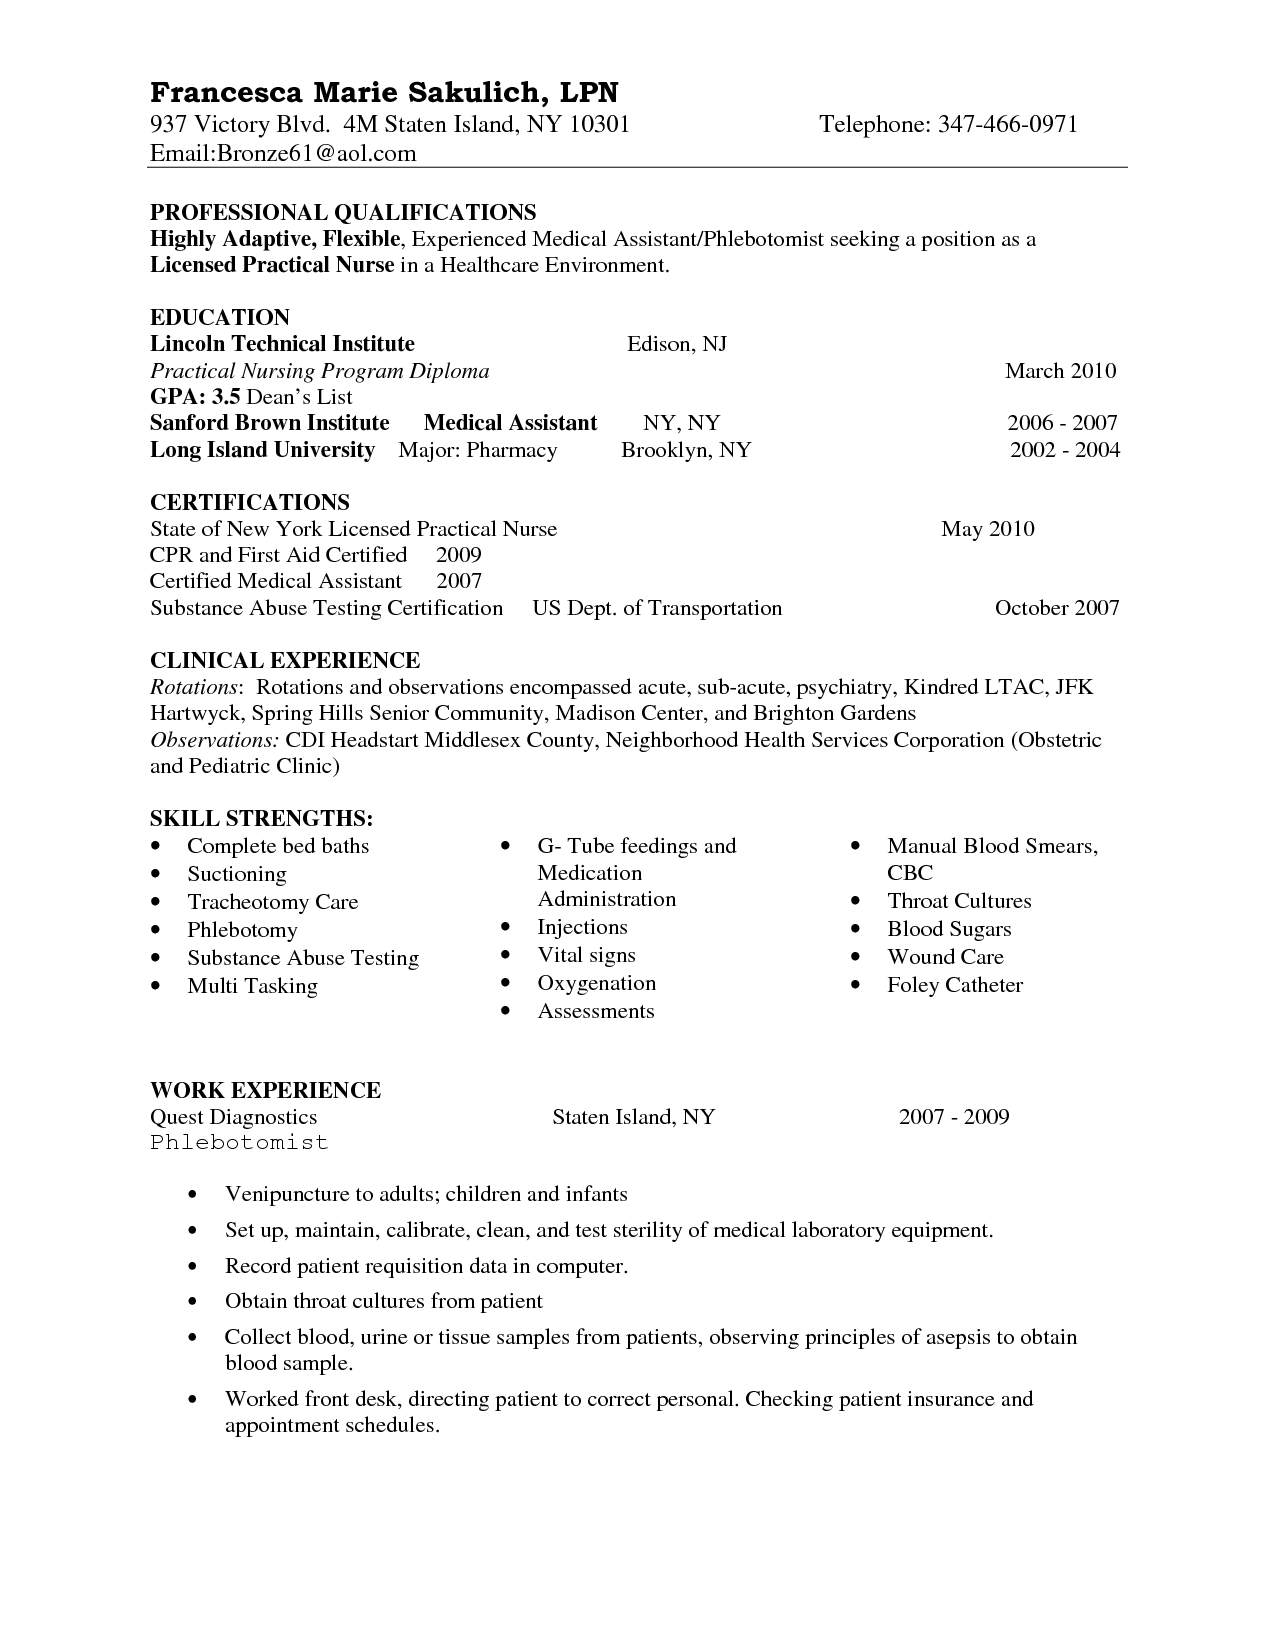 Lpn Resume Skills and Abilities (With images